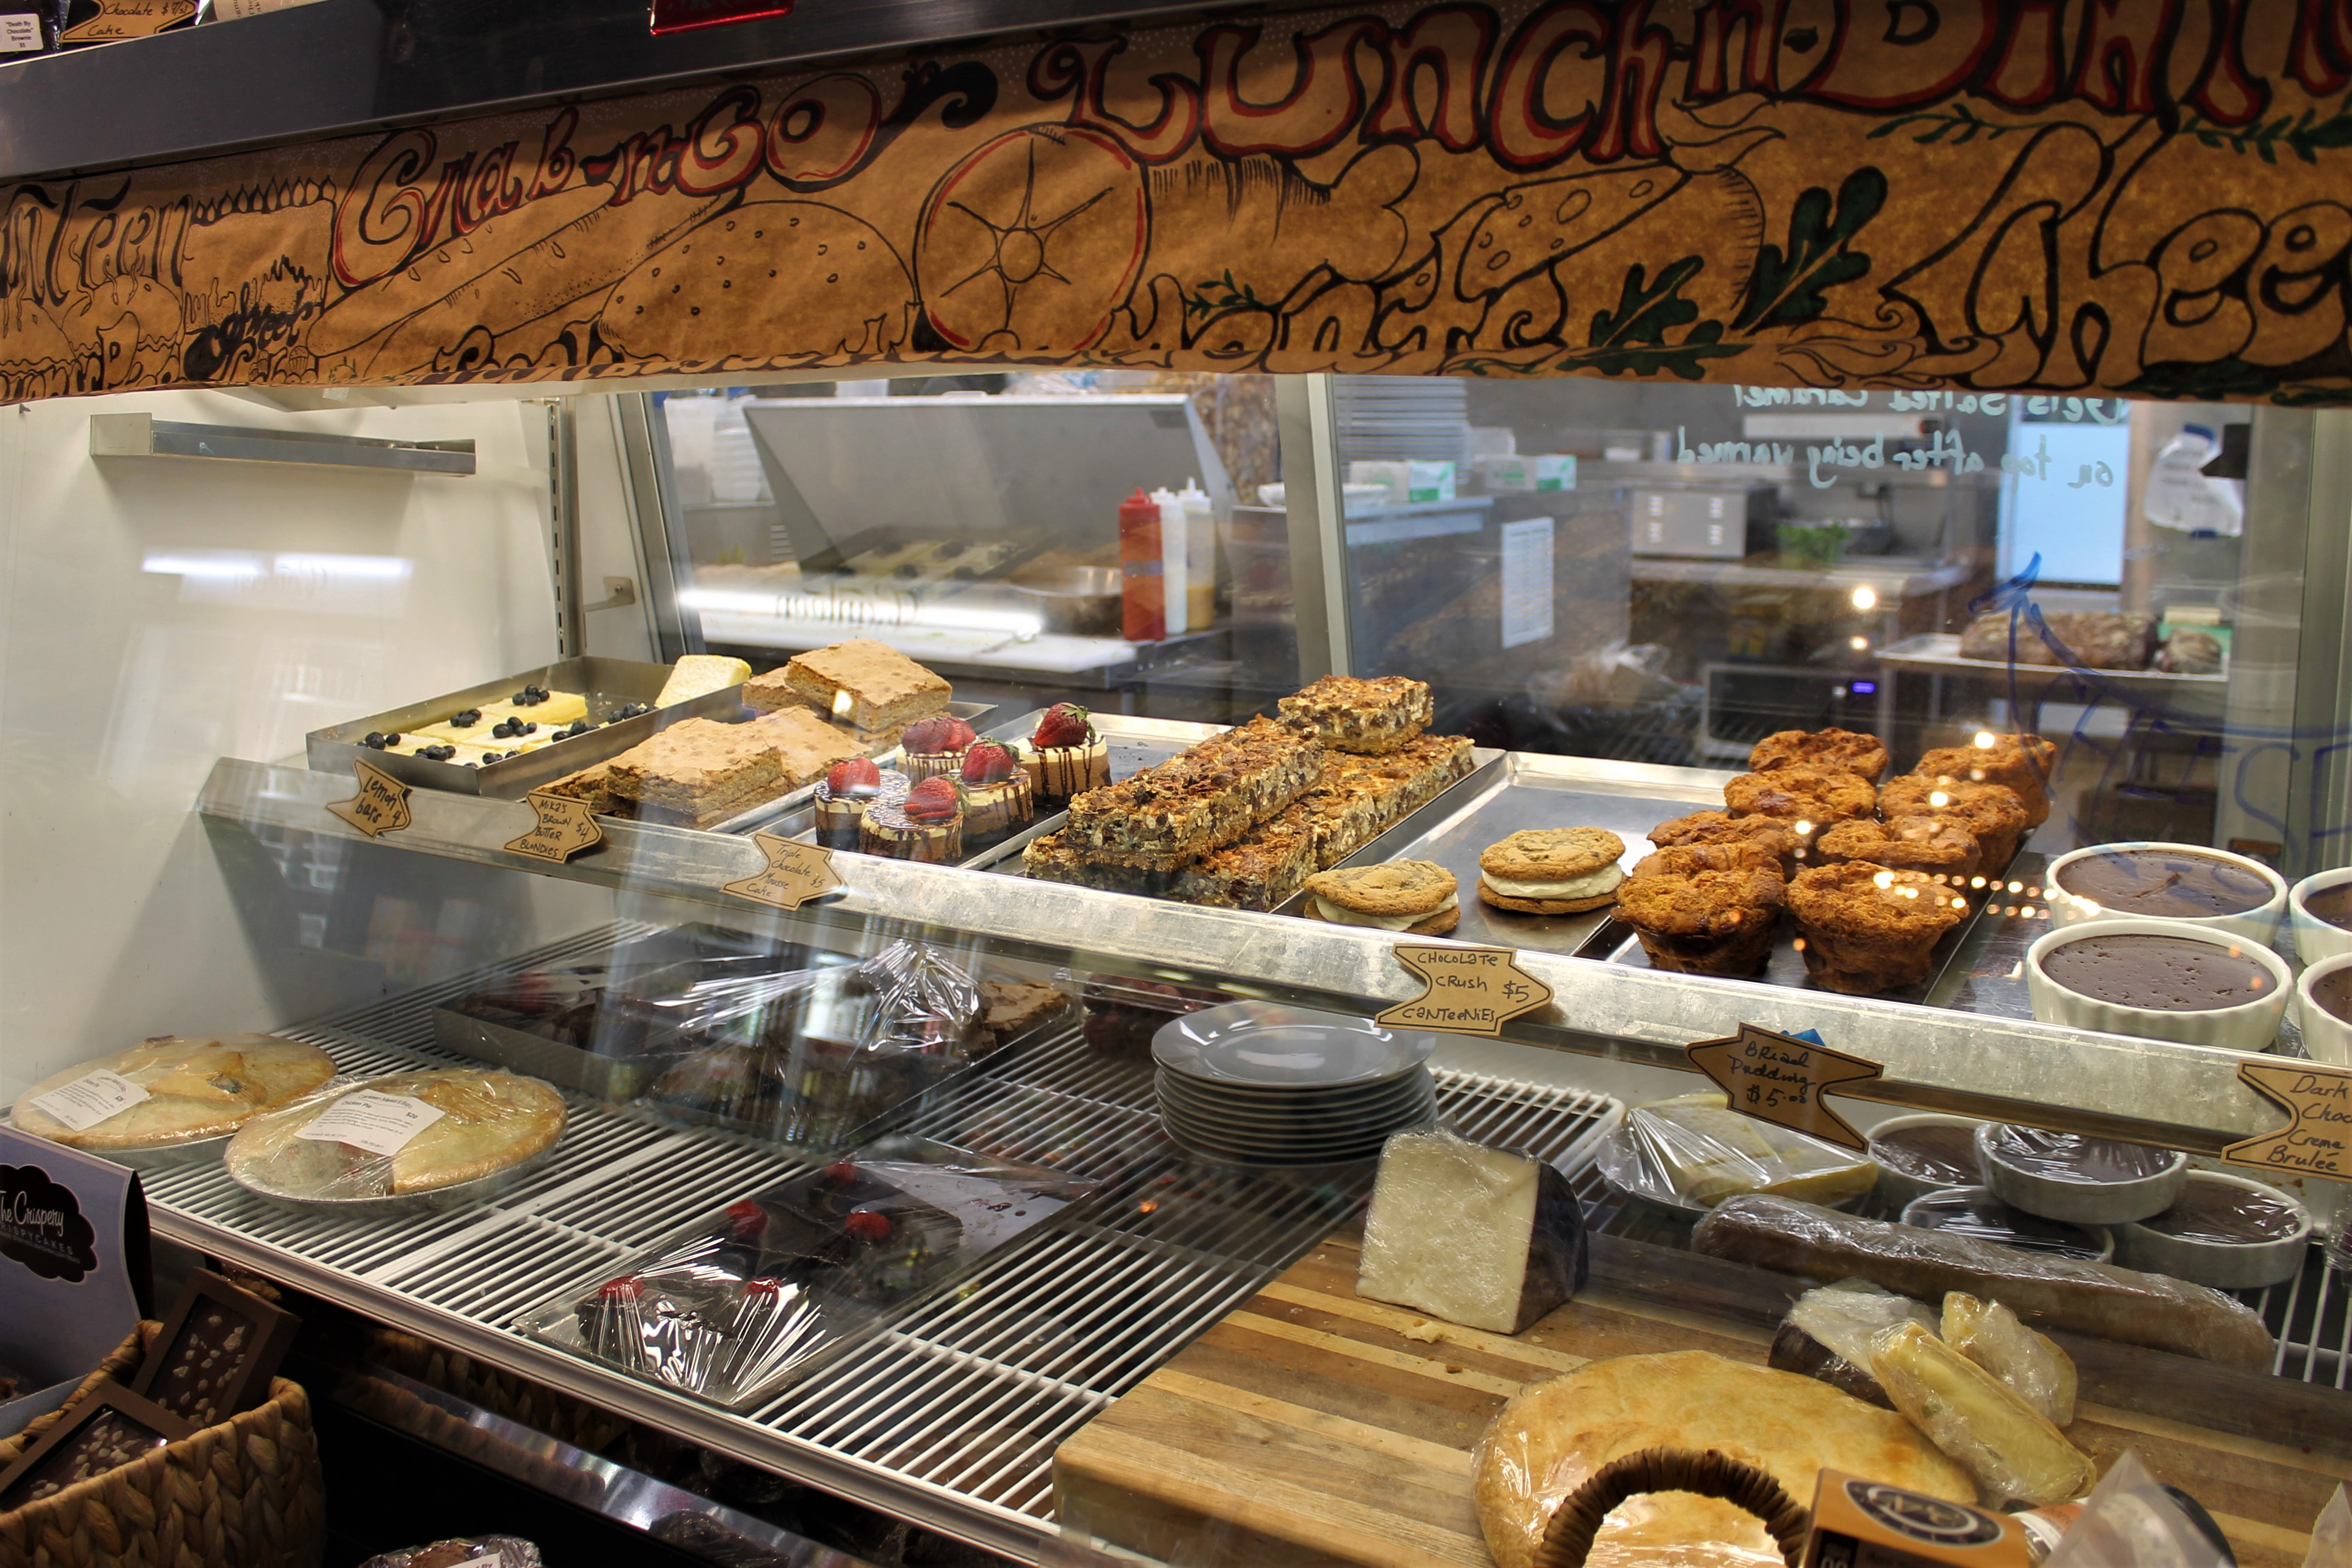 Pastry counter at Canteen Market